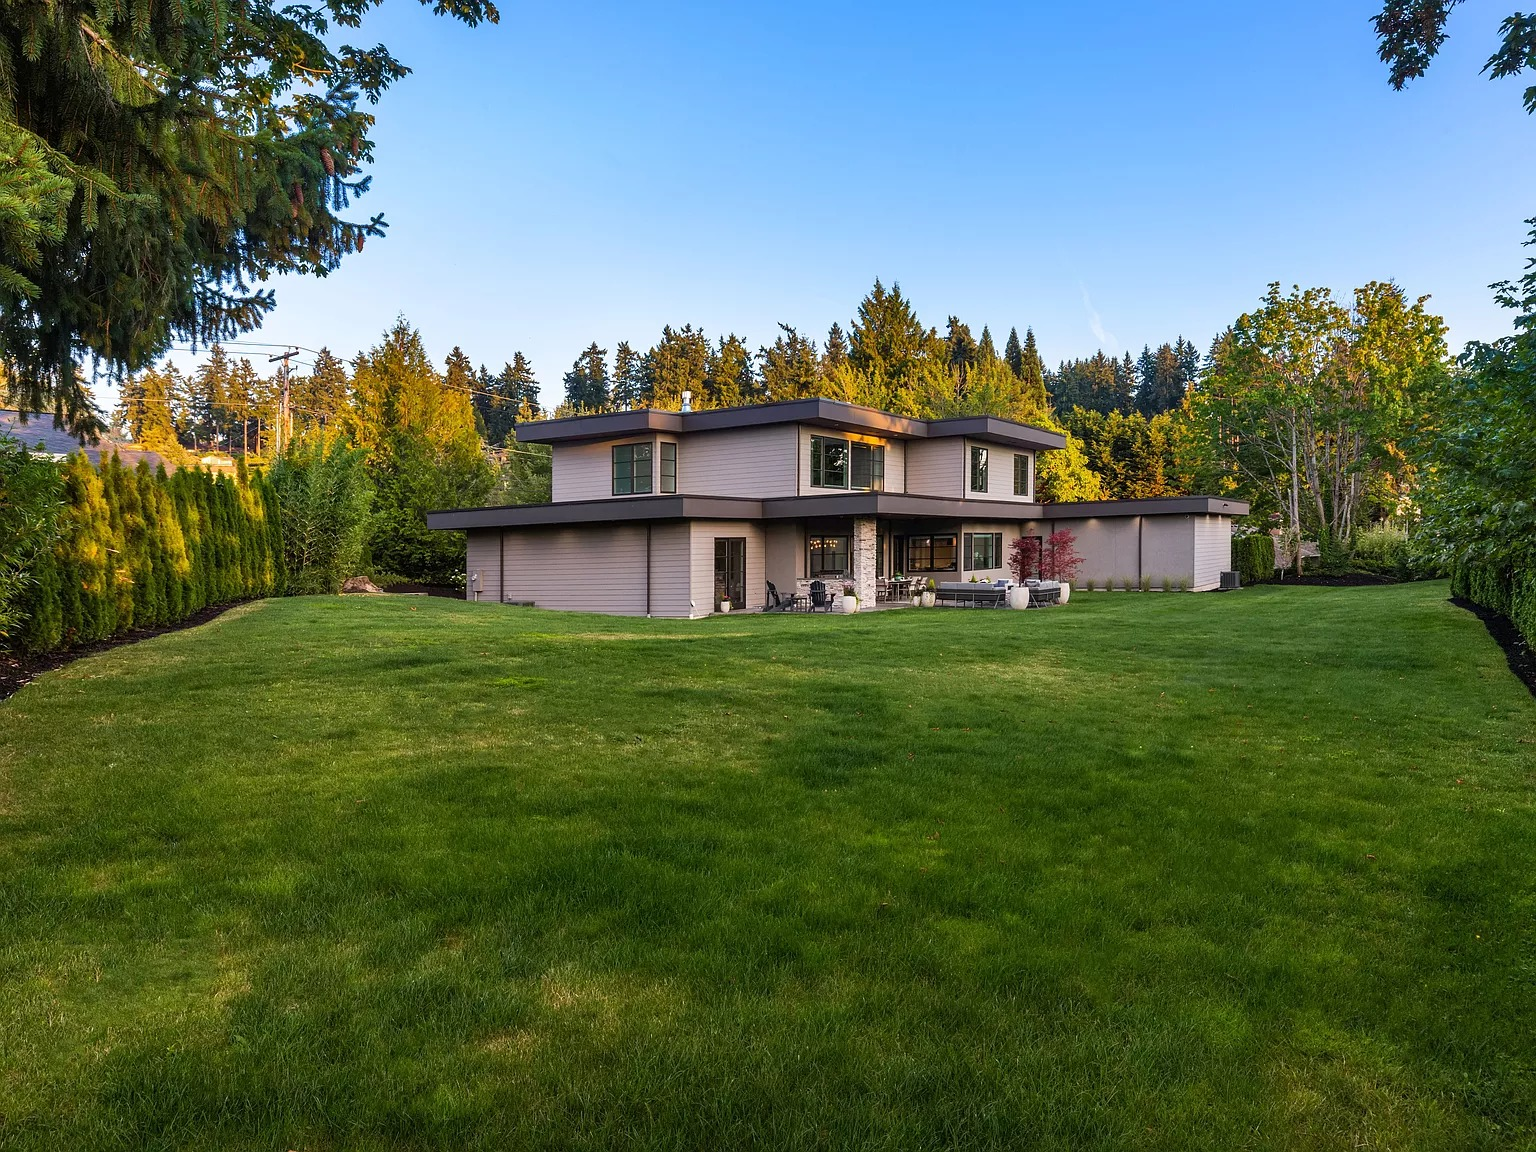 2819 92nd Ave NE, Clyde Hill, WA 98004 - $4,125,000 home for sale, house images, photos and pics gallery